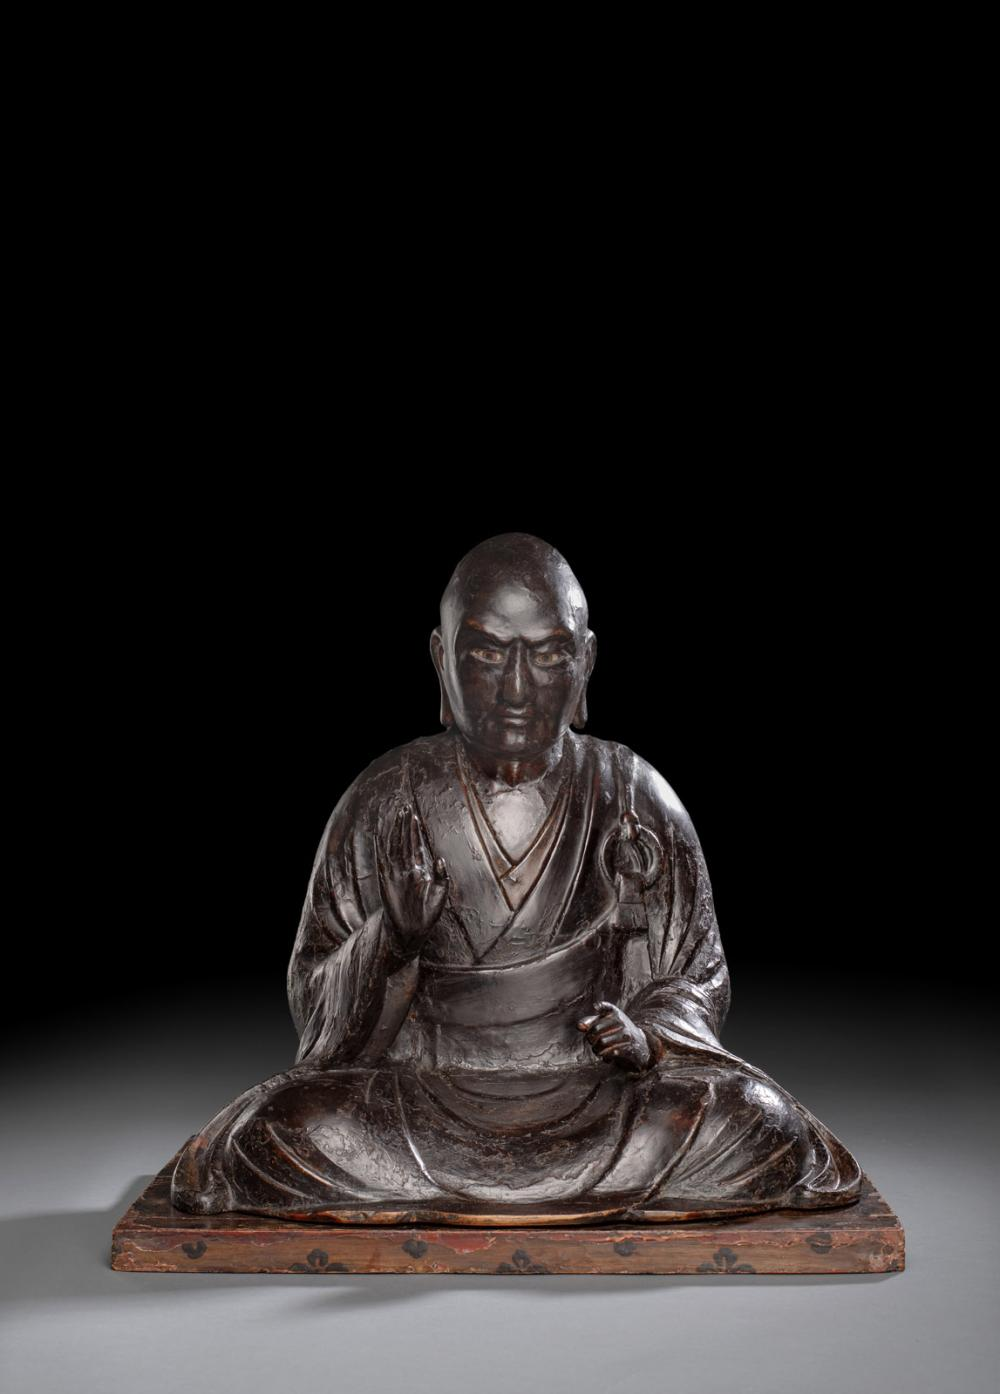 A CARVED AND LACQUERED WOOD FIGURE OF A SEATED PRIEST